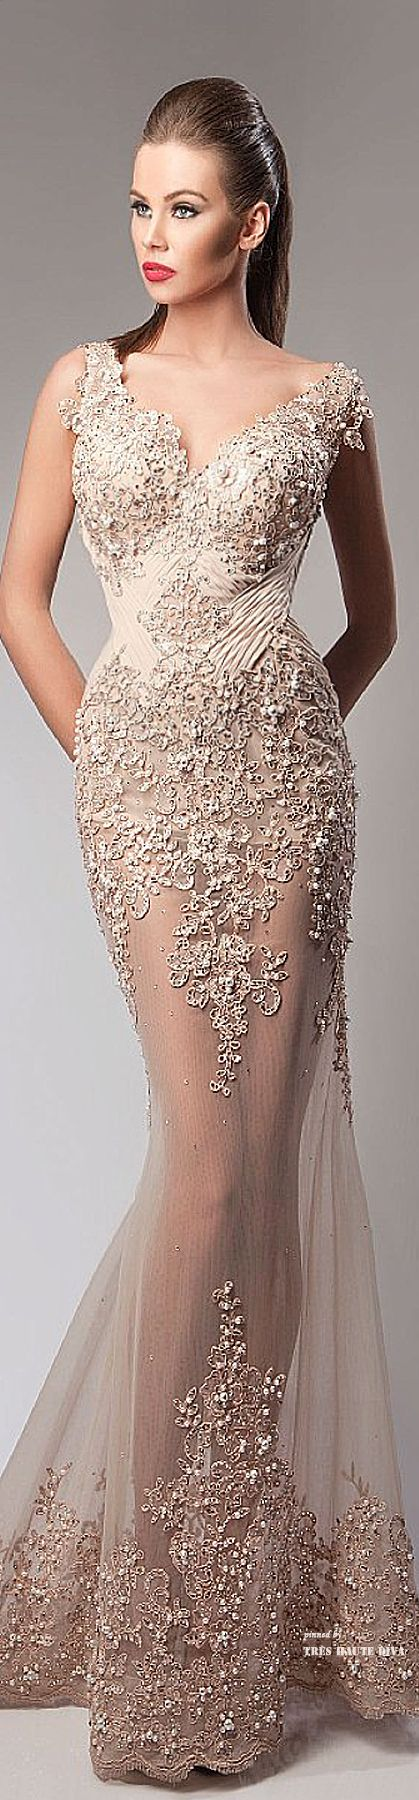 Hanna Toumajean Couture Fall Winter 2014-15 ♔ THD